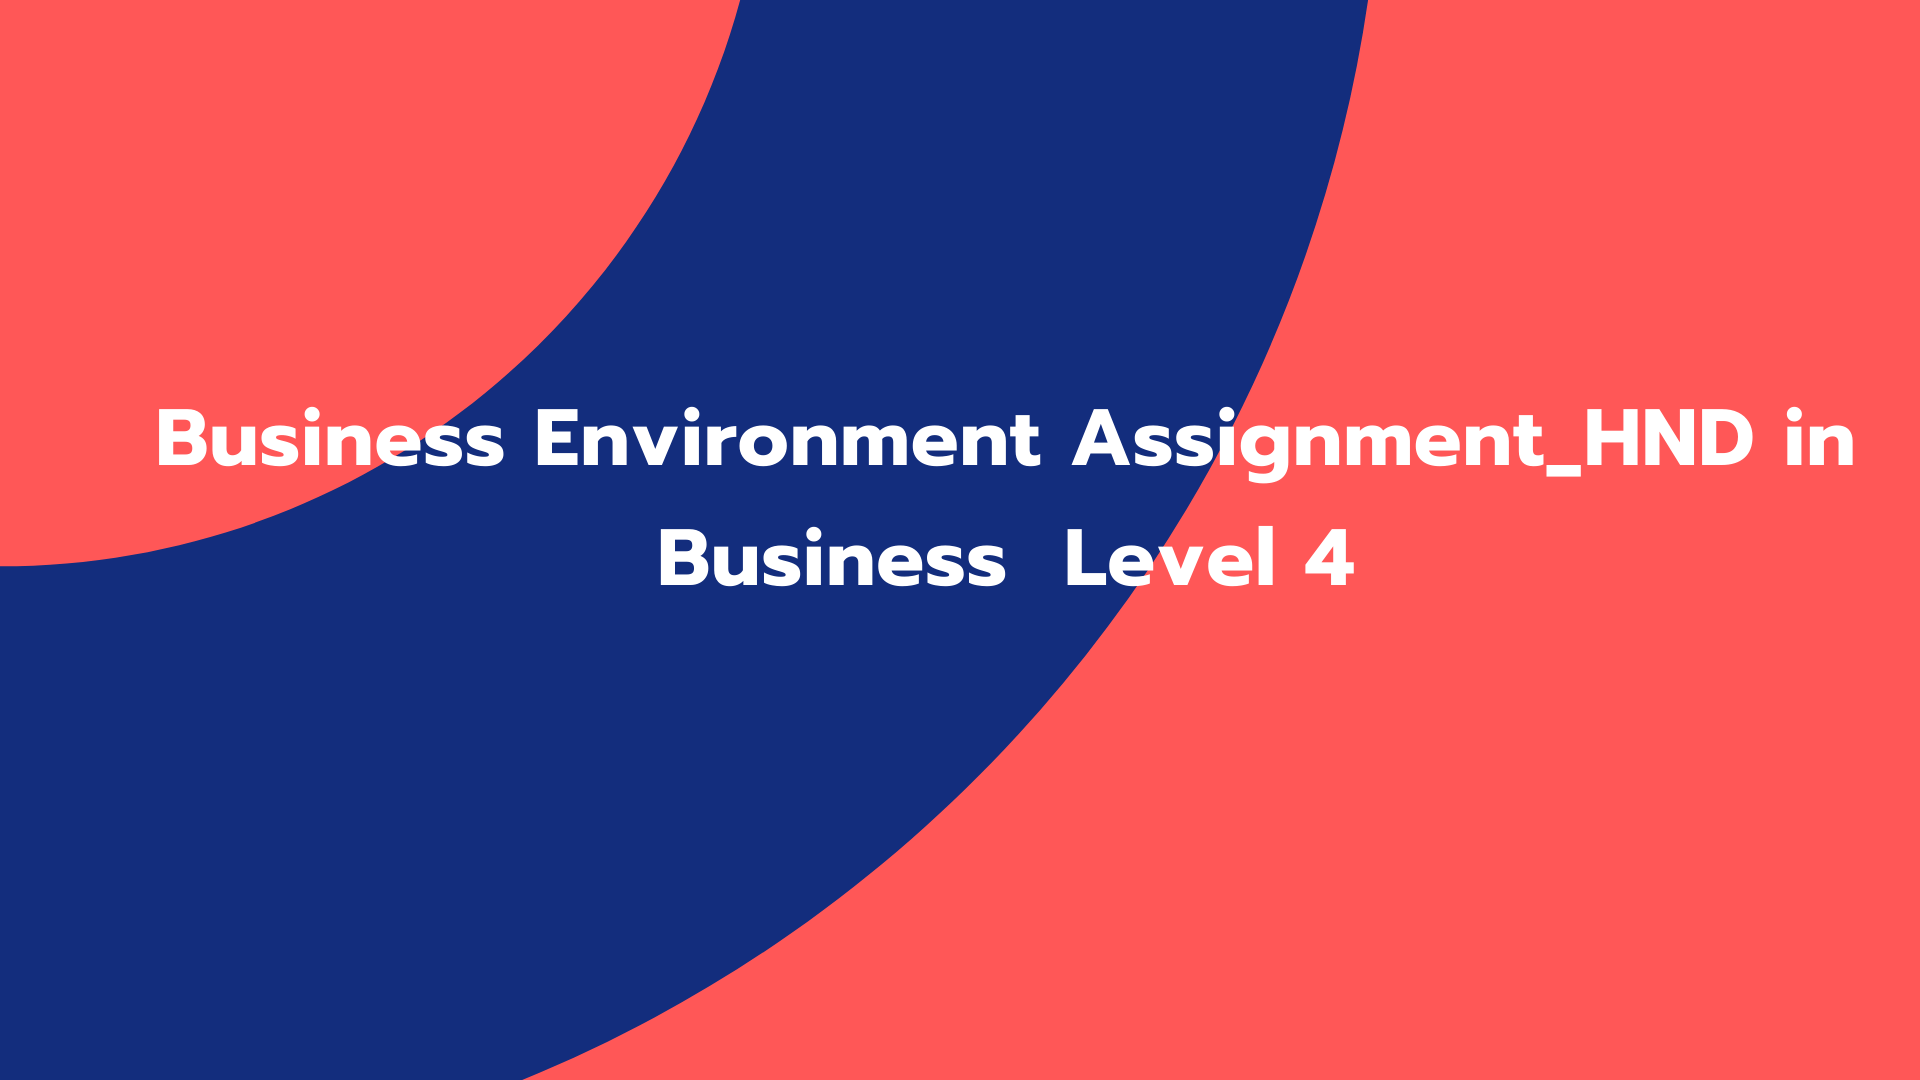 Business Environment Assignment_HND in Business Level 4